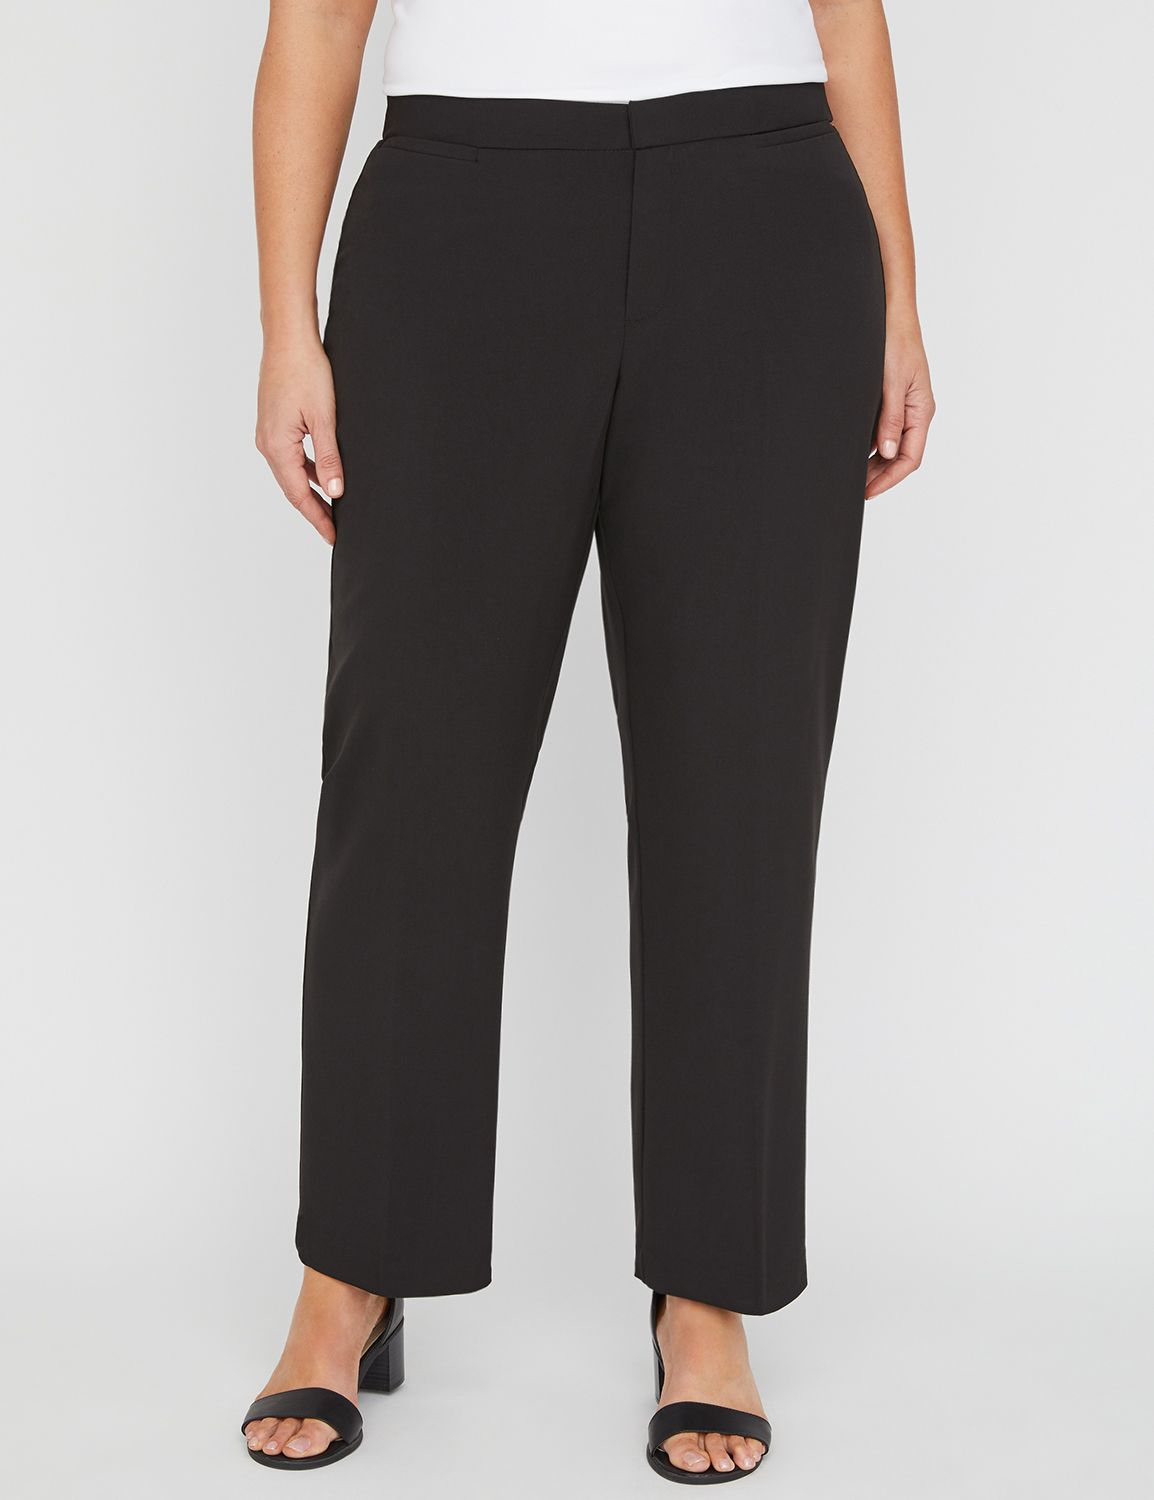 Right Fit Pant (Moderately Curvy) Right Fit Pant (Moderately Curvy) MP-300009901